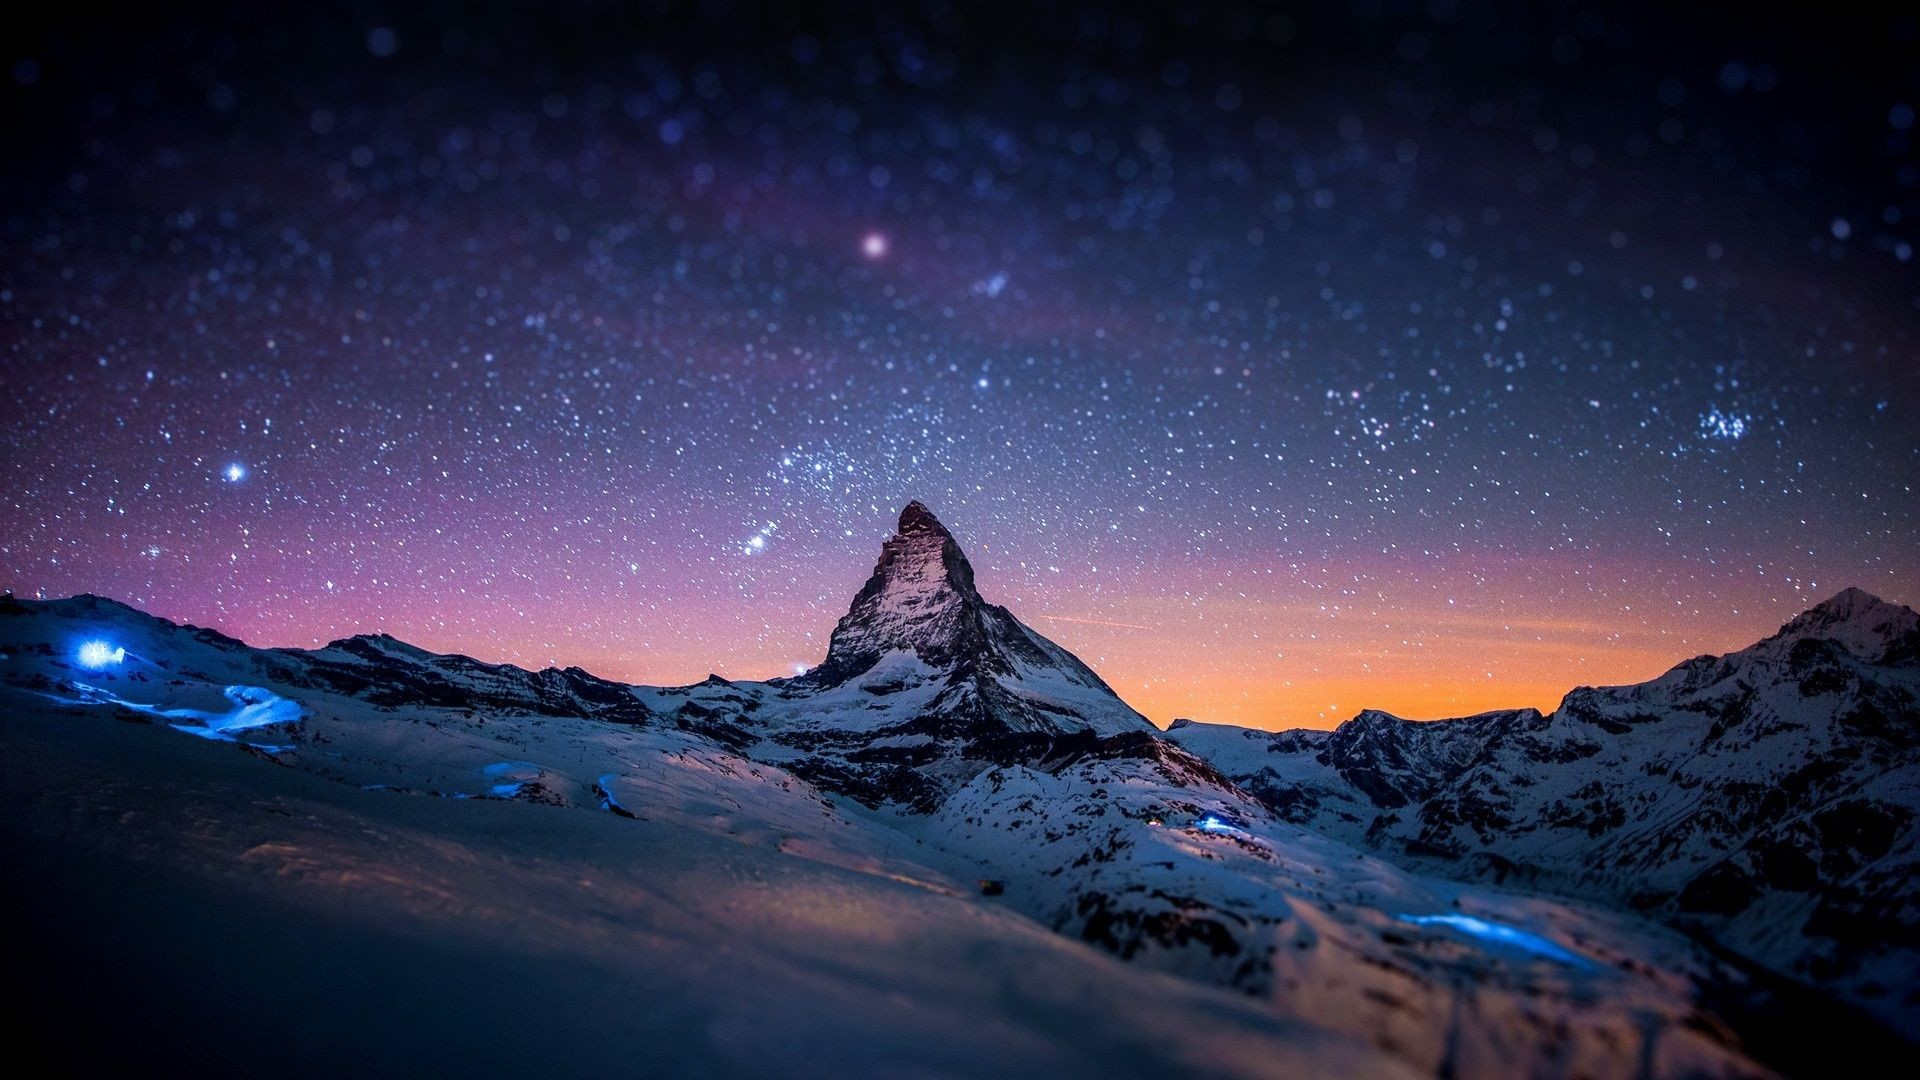 Galaxy Tumblr Wallpapers Desktop Background Matterhorn Hd